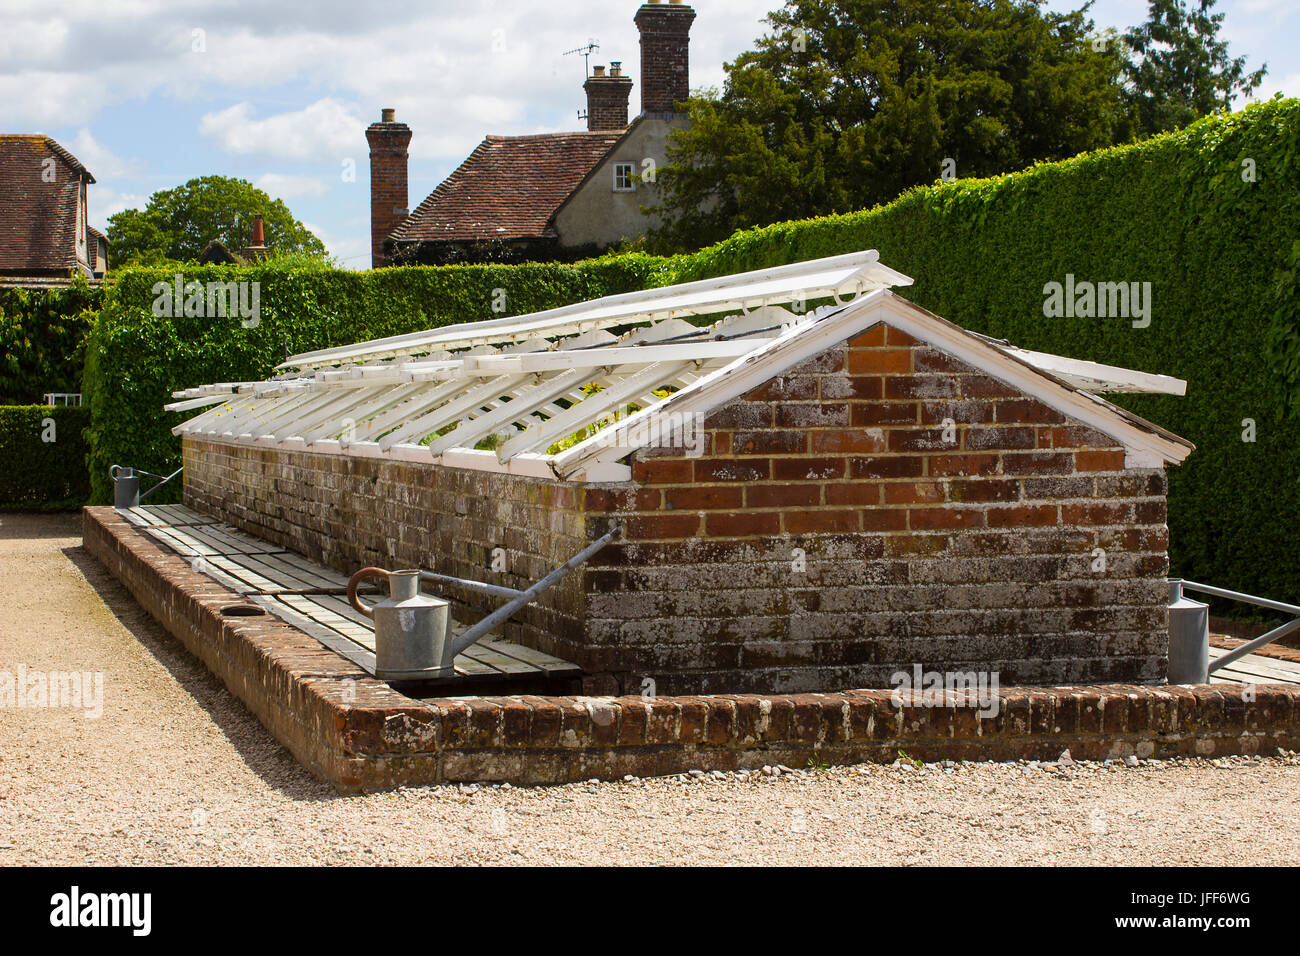 One of many brick built cold frames in the famous walled garden in ...